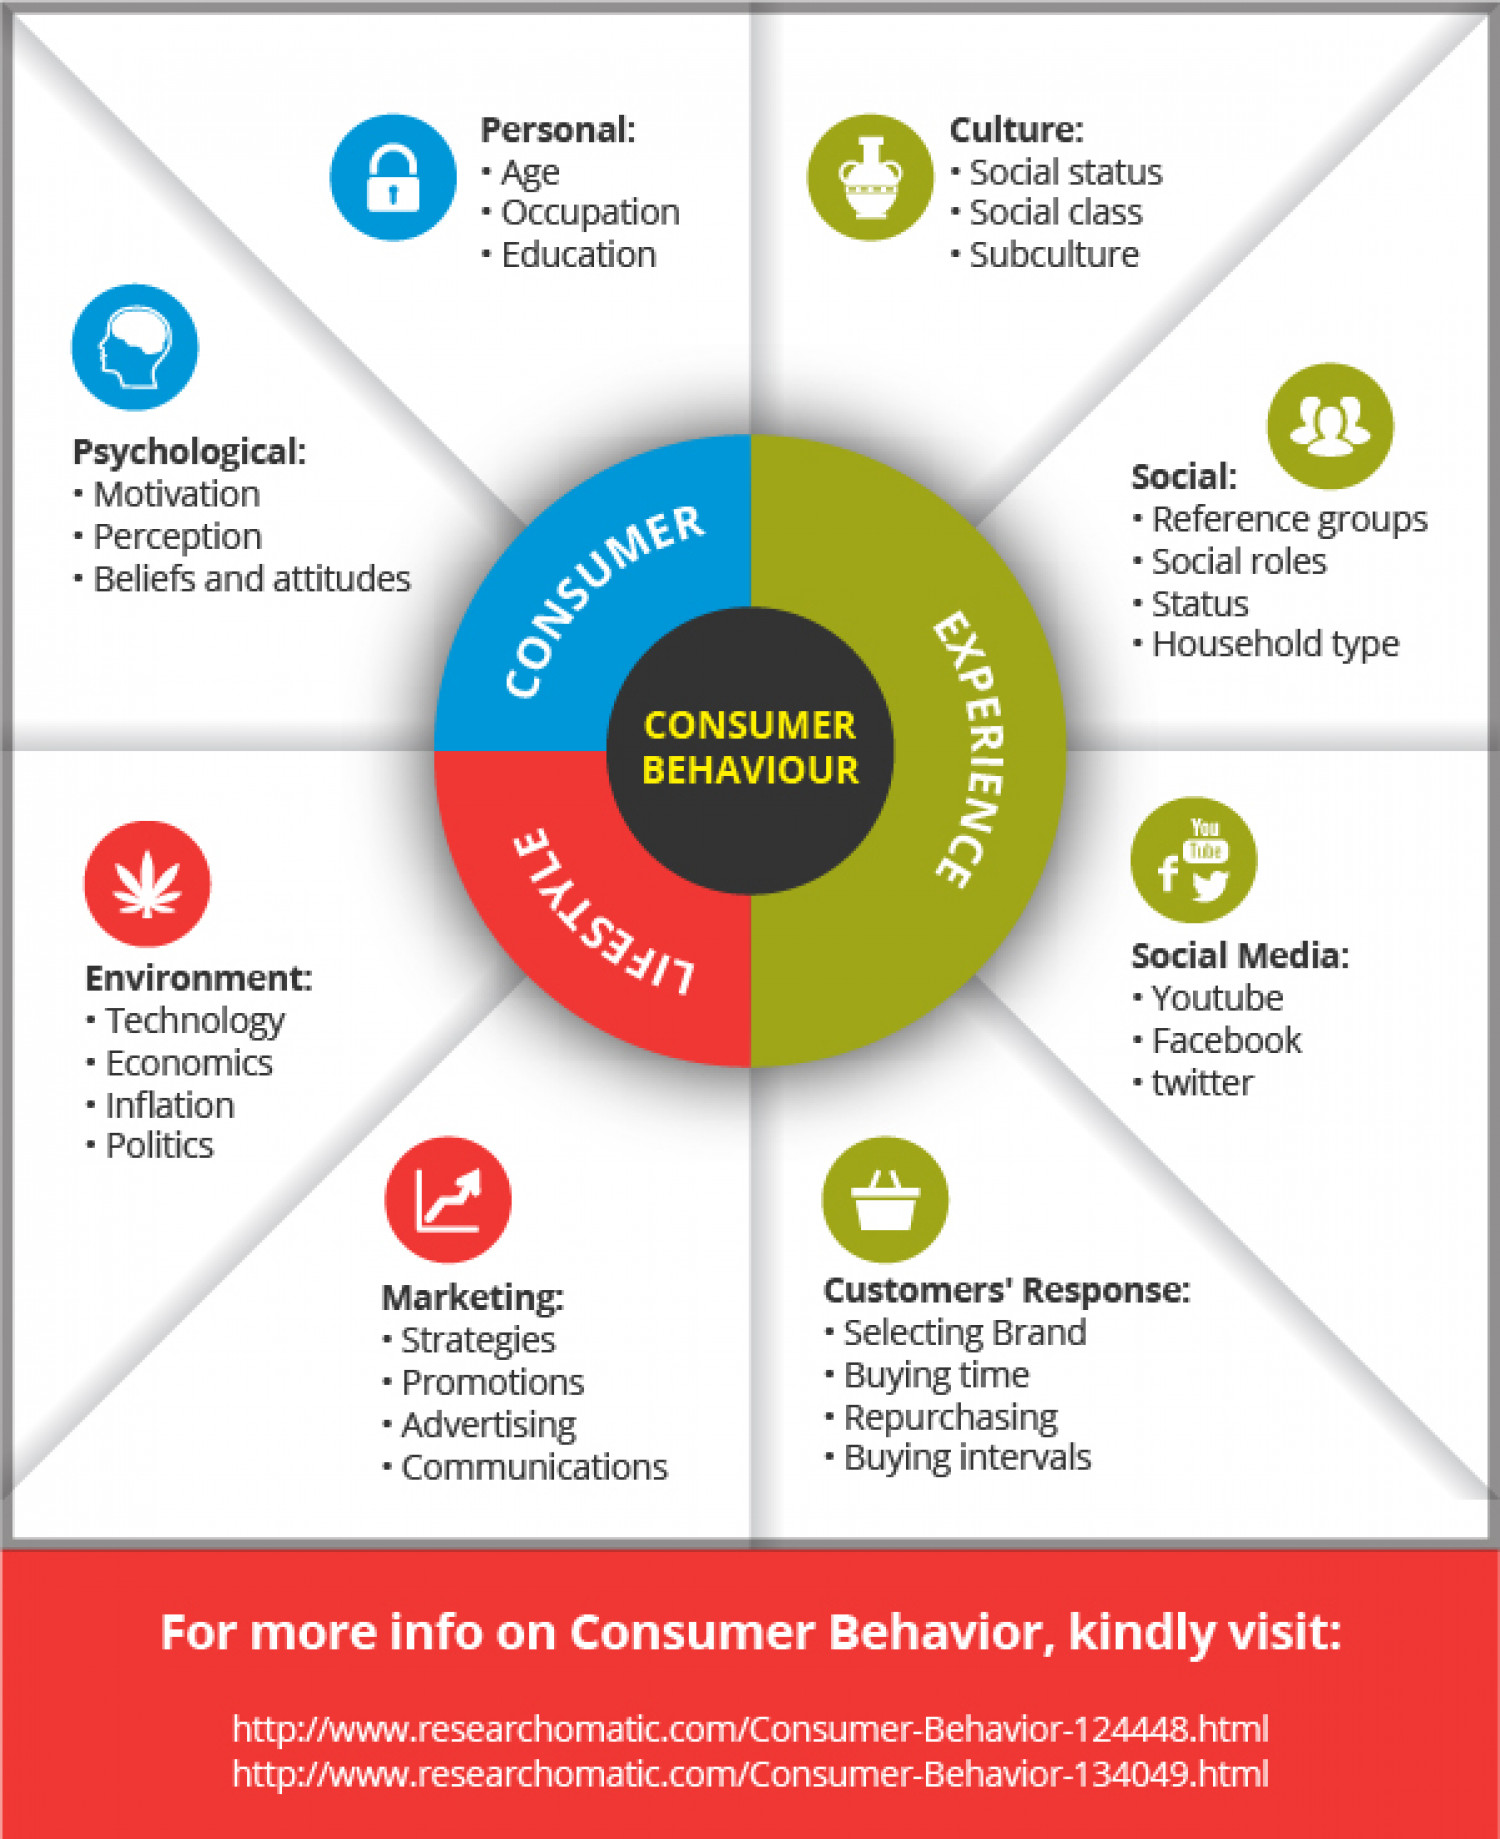 Consumer behavior and marketing factors influencing